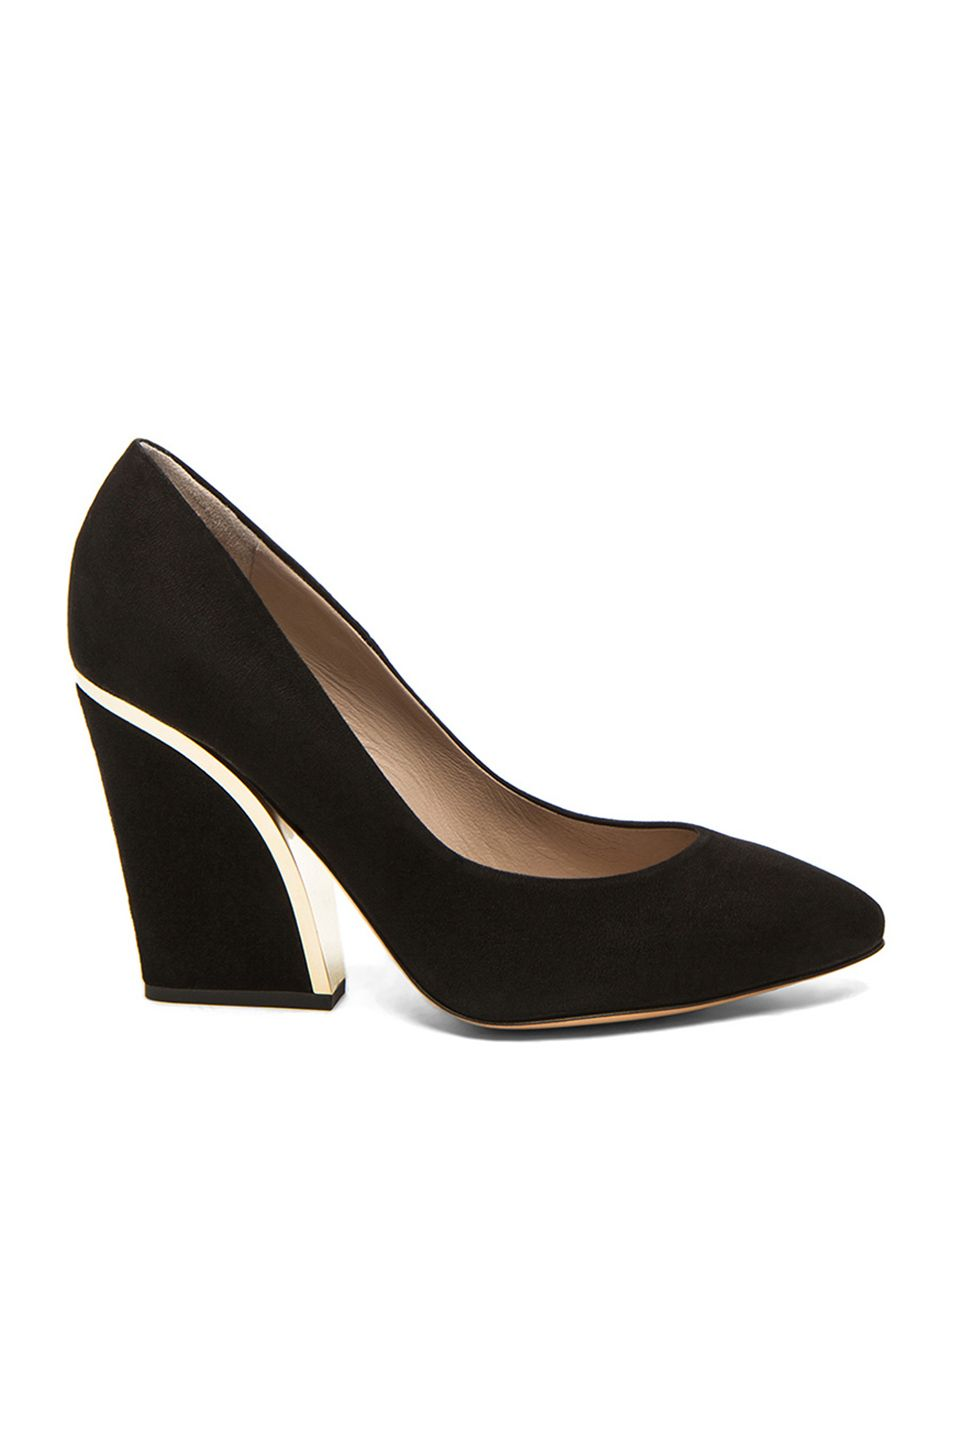 a7ed4a6e5db5 Image 1 of Chloe Suede Gold Trim Pumps in Black